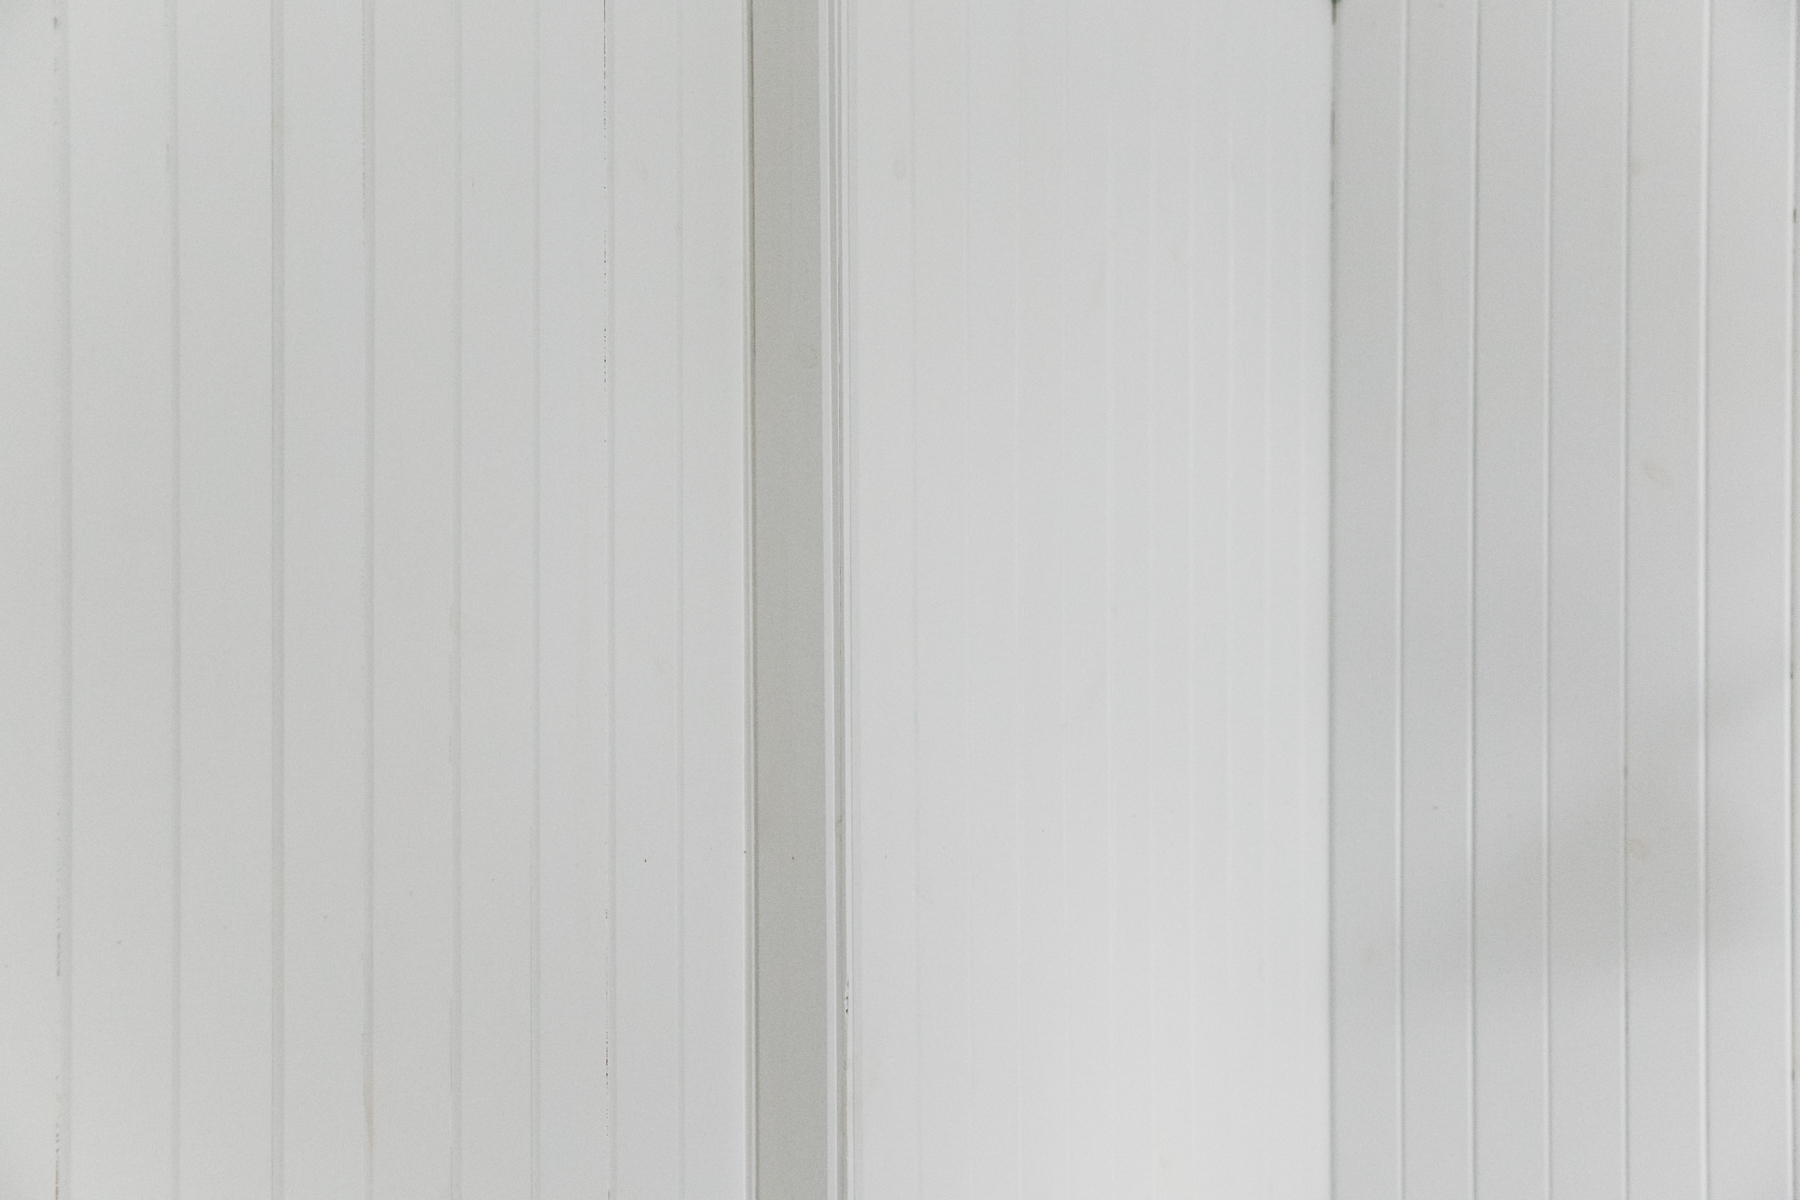 White cladding inside The Crofter's House on the Isle of Skye.